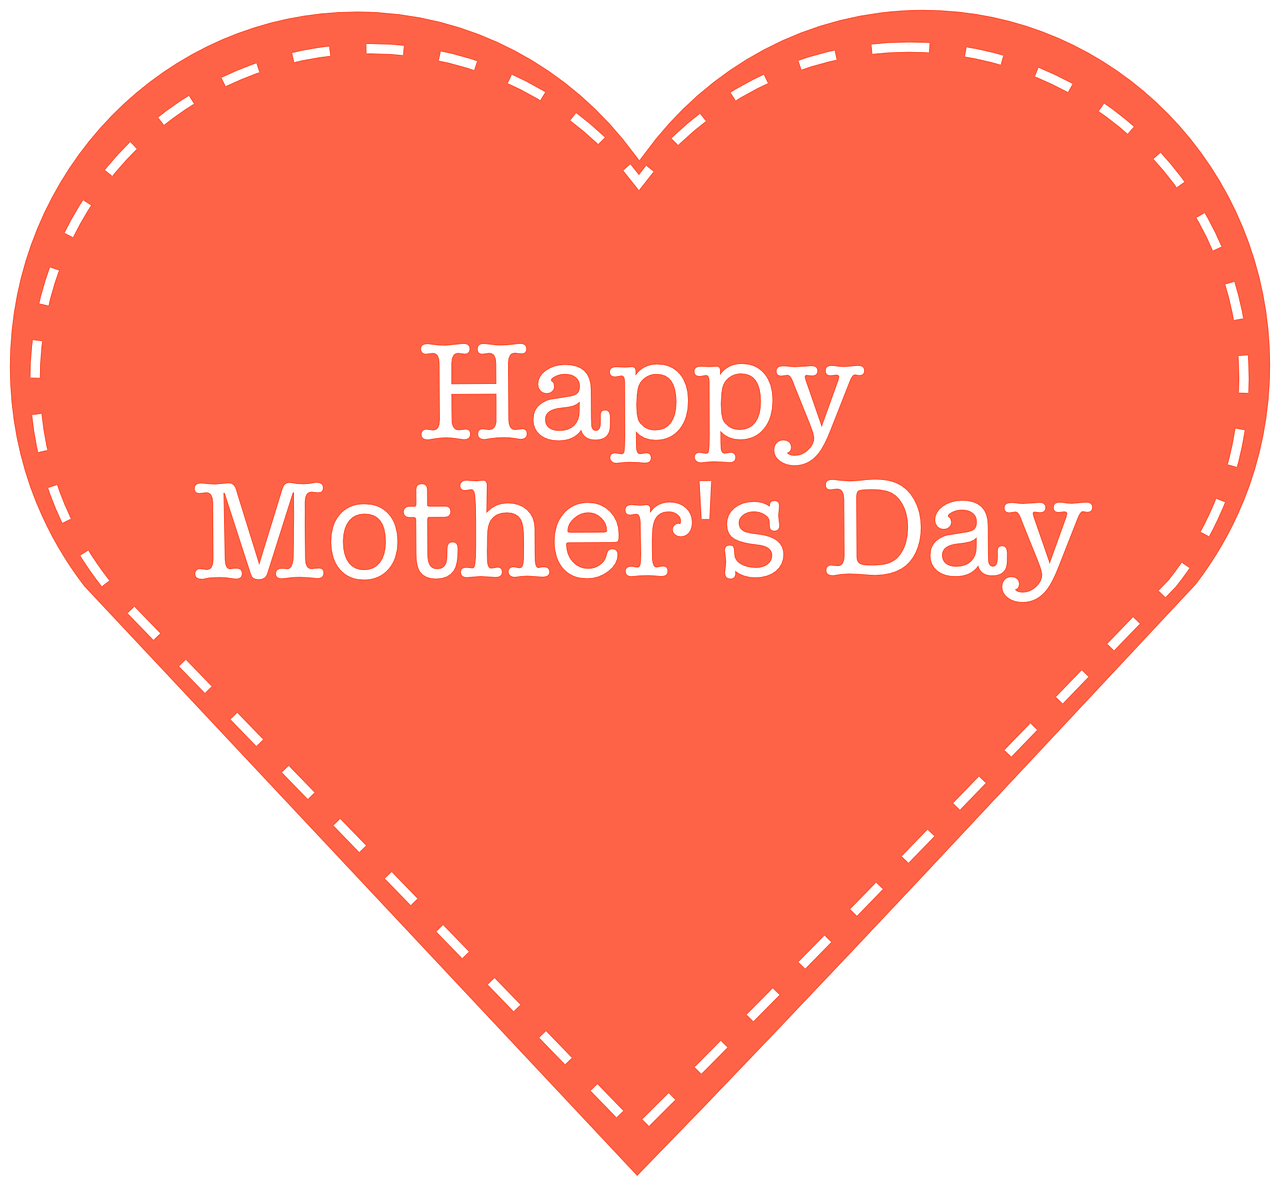 Happy Mother's Day 2020: Messages, Wishes, Images, Greetings